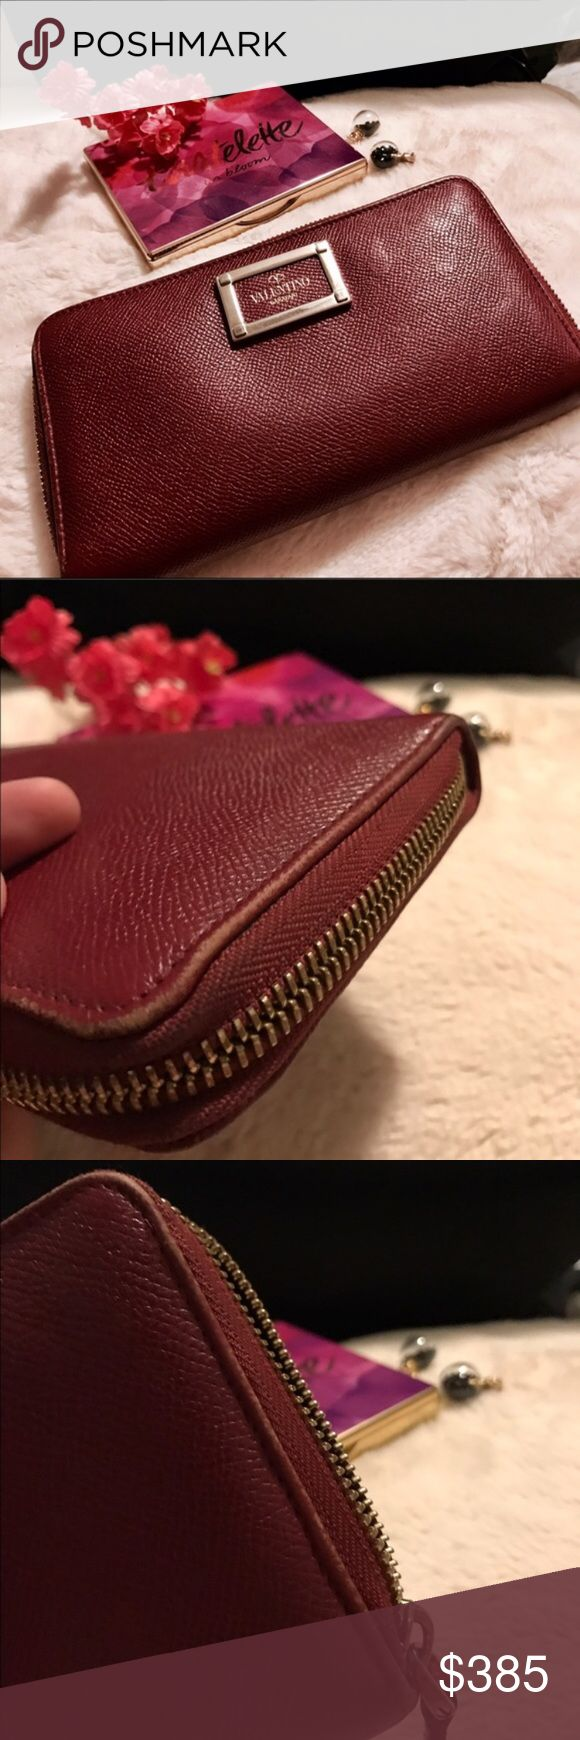 Sale 💋Valentino Garavani Wallet Beautiful deep red VG wallet. She has been used plenty of times. She does have signs of rub and may need a clean. Zipper is a bit tough but works perfect. 7 out of 10 in my opinion. I do trade, otherwise offers welcome (TV higher) Valentino Garavani Bags Wallets